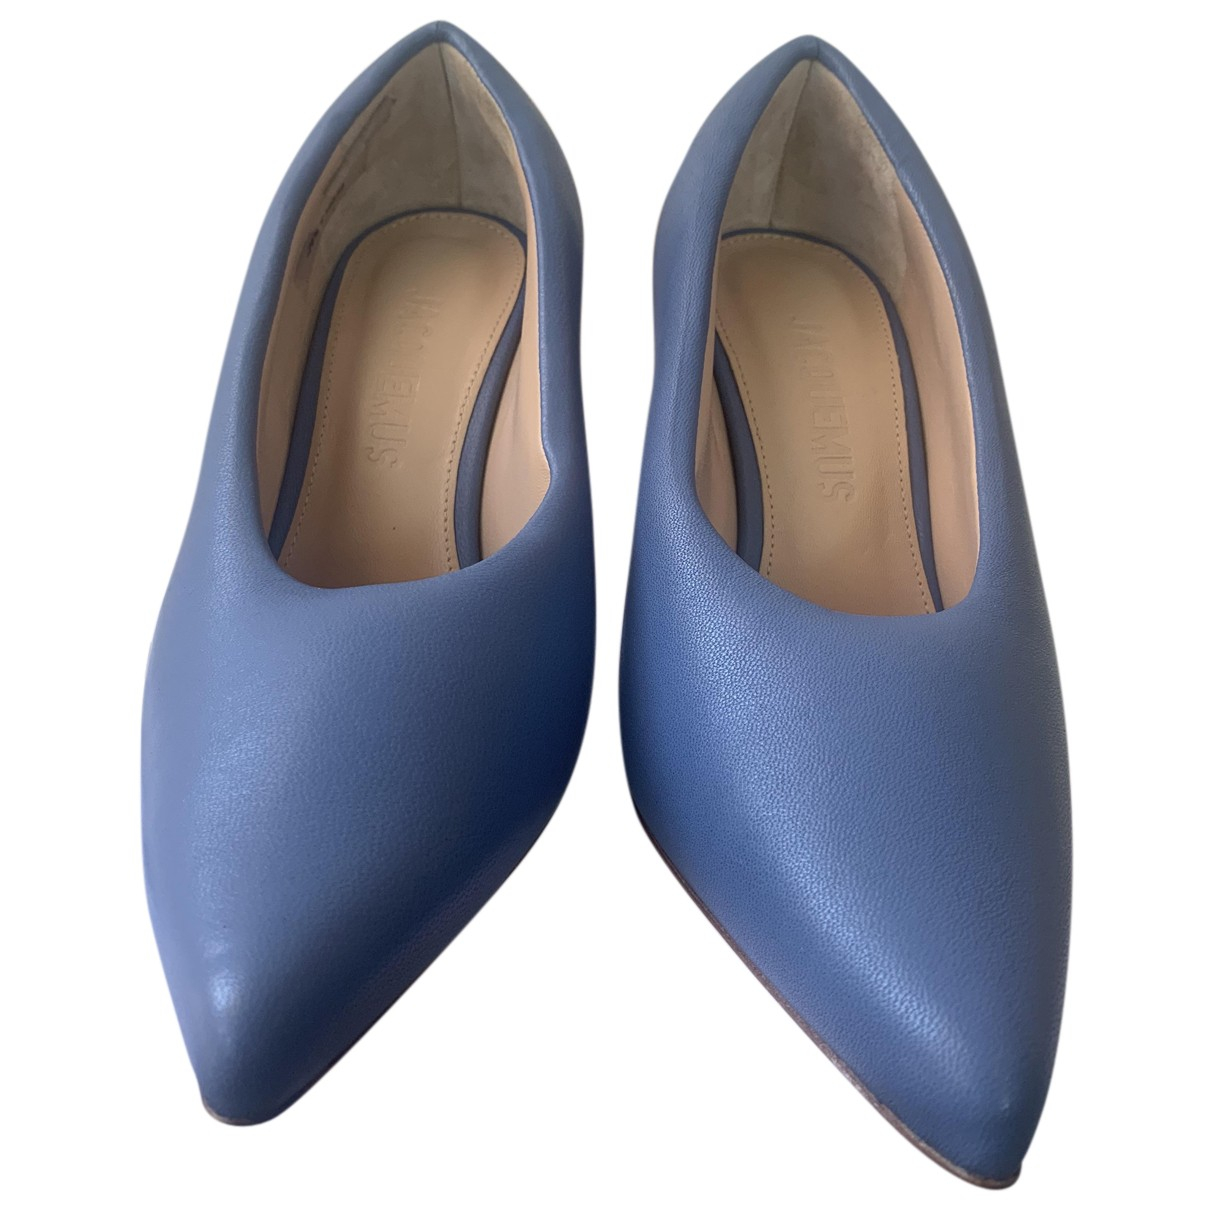 Jacquemus Jacques Turquoise Leather Heels for Women 37.5 EU